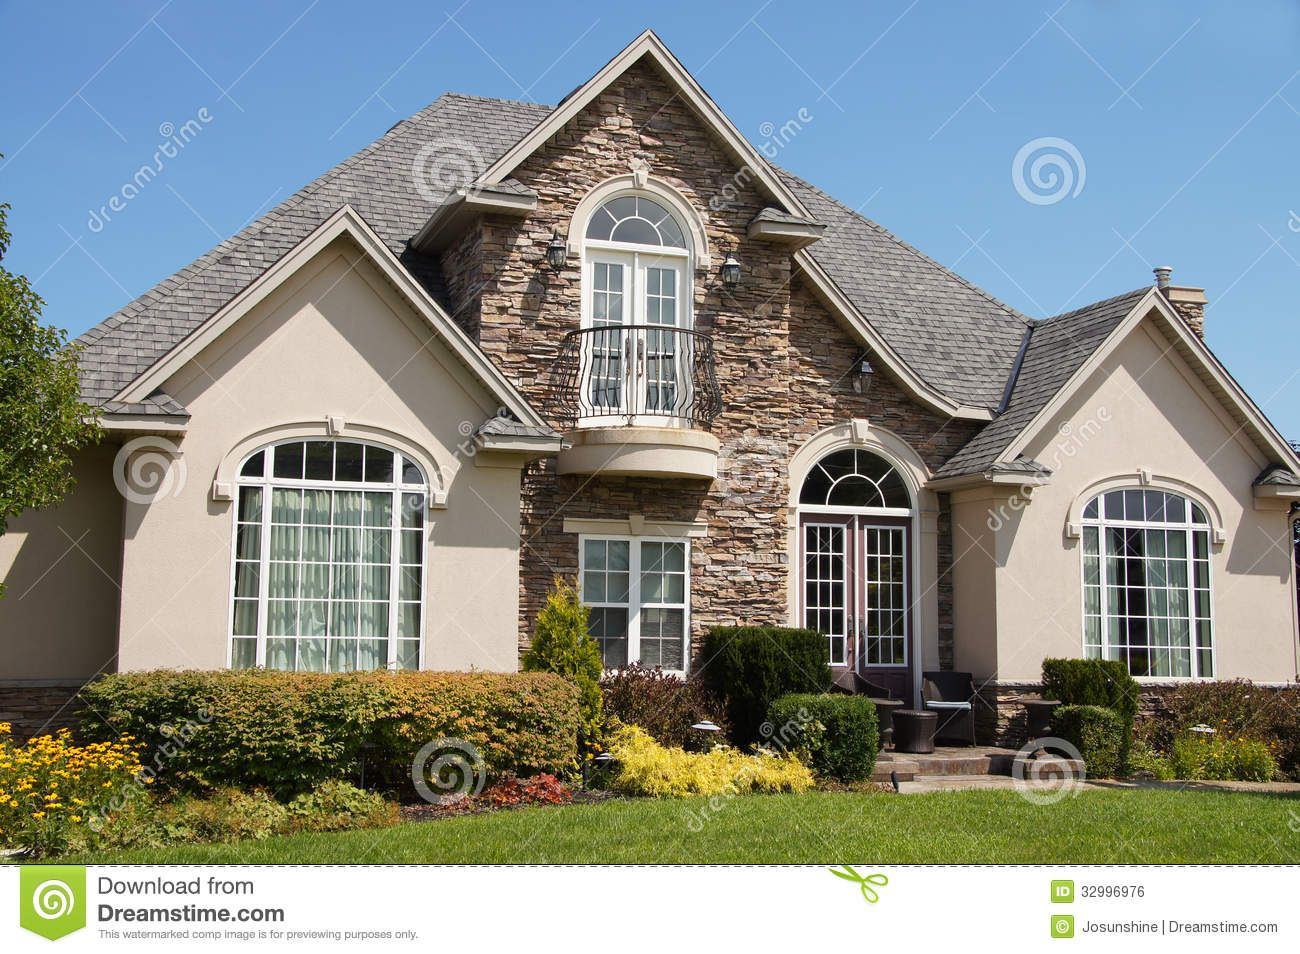 Stucco stone house pretty windows royalty free stock image for House of granite and marble